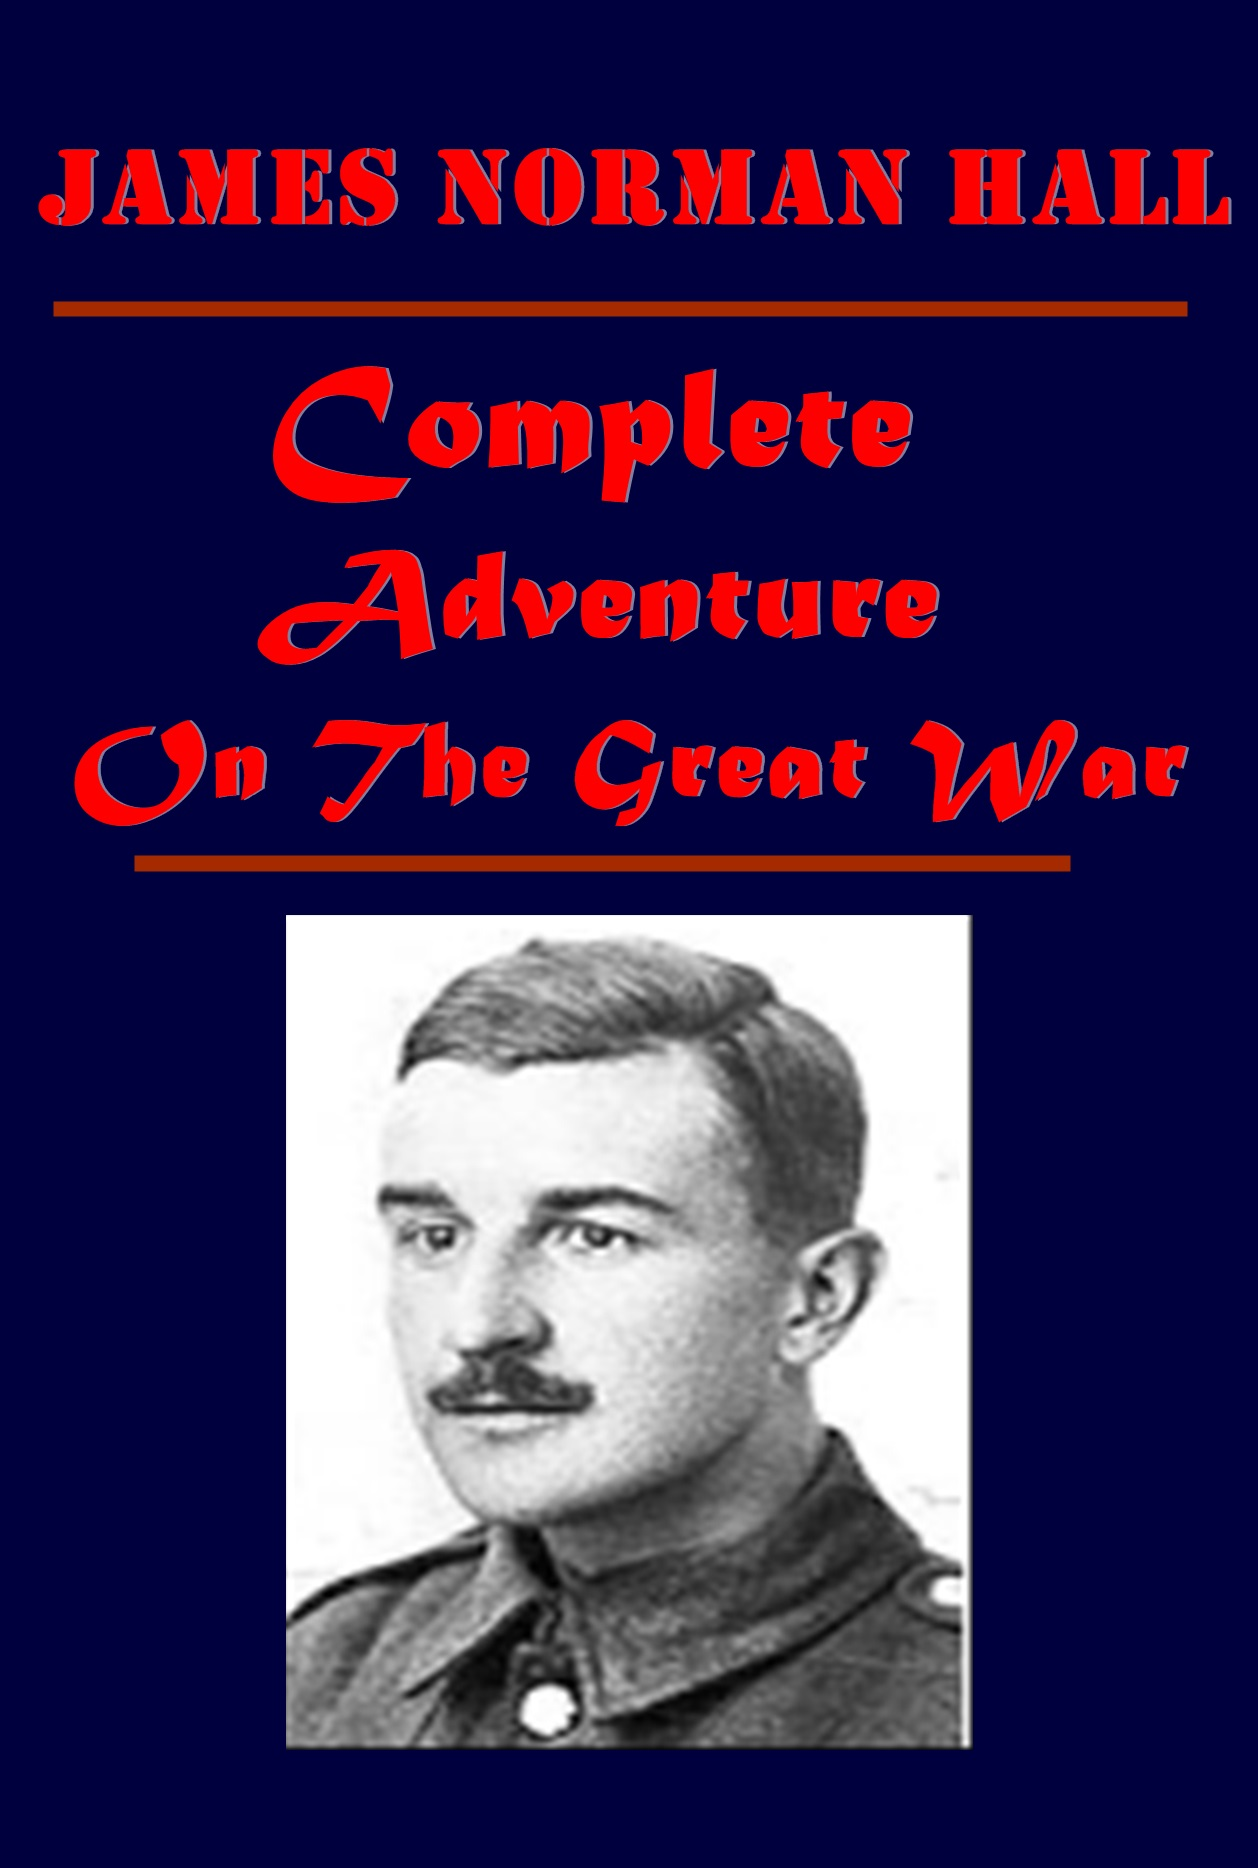 James Norman Hall - Complete Adventure On The Great War